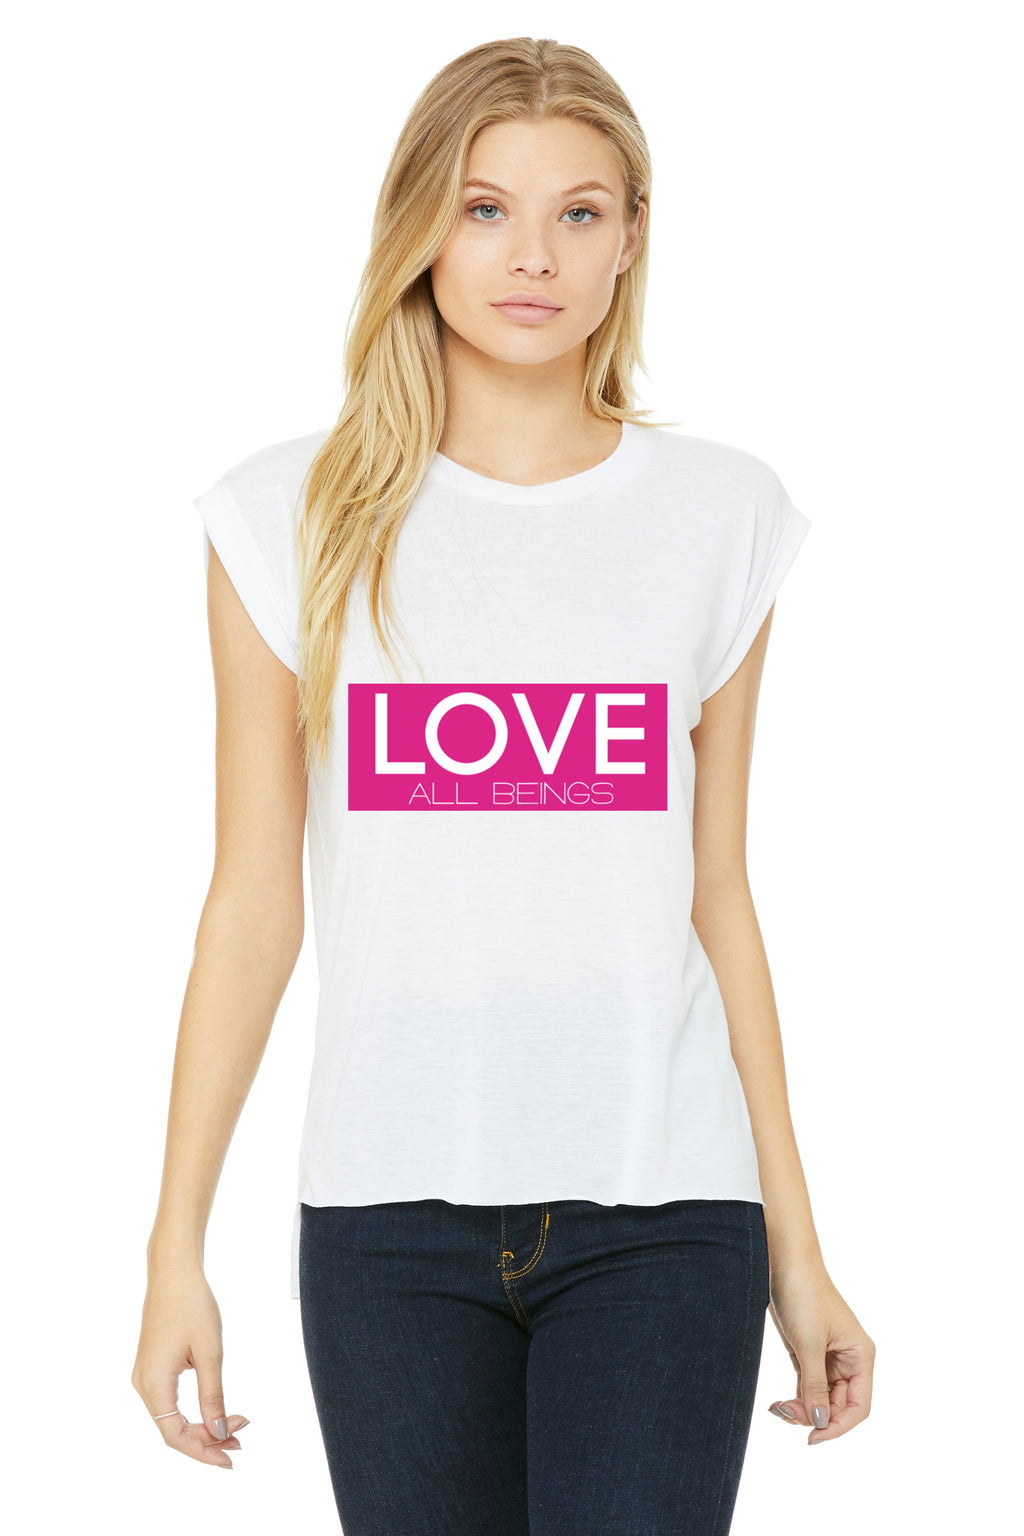 "Womens ""LOVE All Beings"" Rolled Cuff Muscle Tank,Humane Apparel  - Humane Apparel"